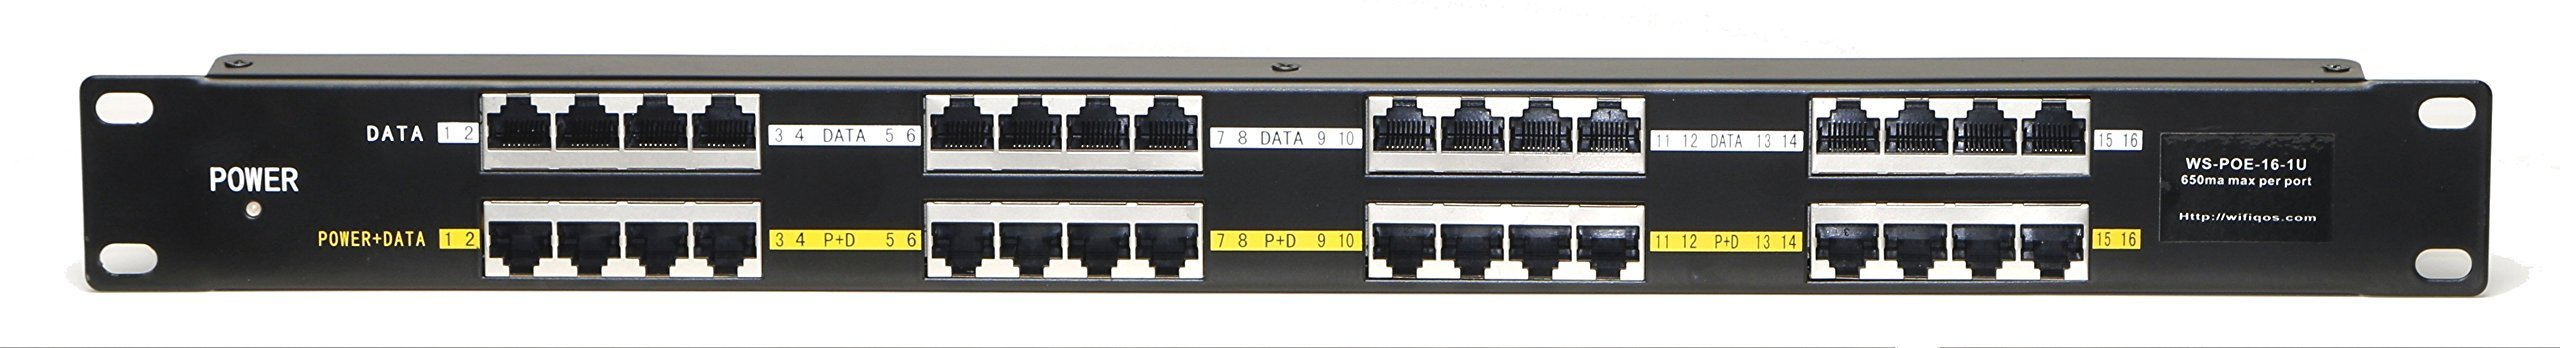 WS-POE-16-1U passive PoE - 16 Port Power over Ethernet Injector - Rack Mount, power supply available separately